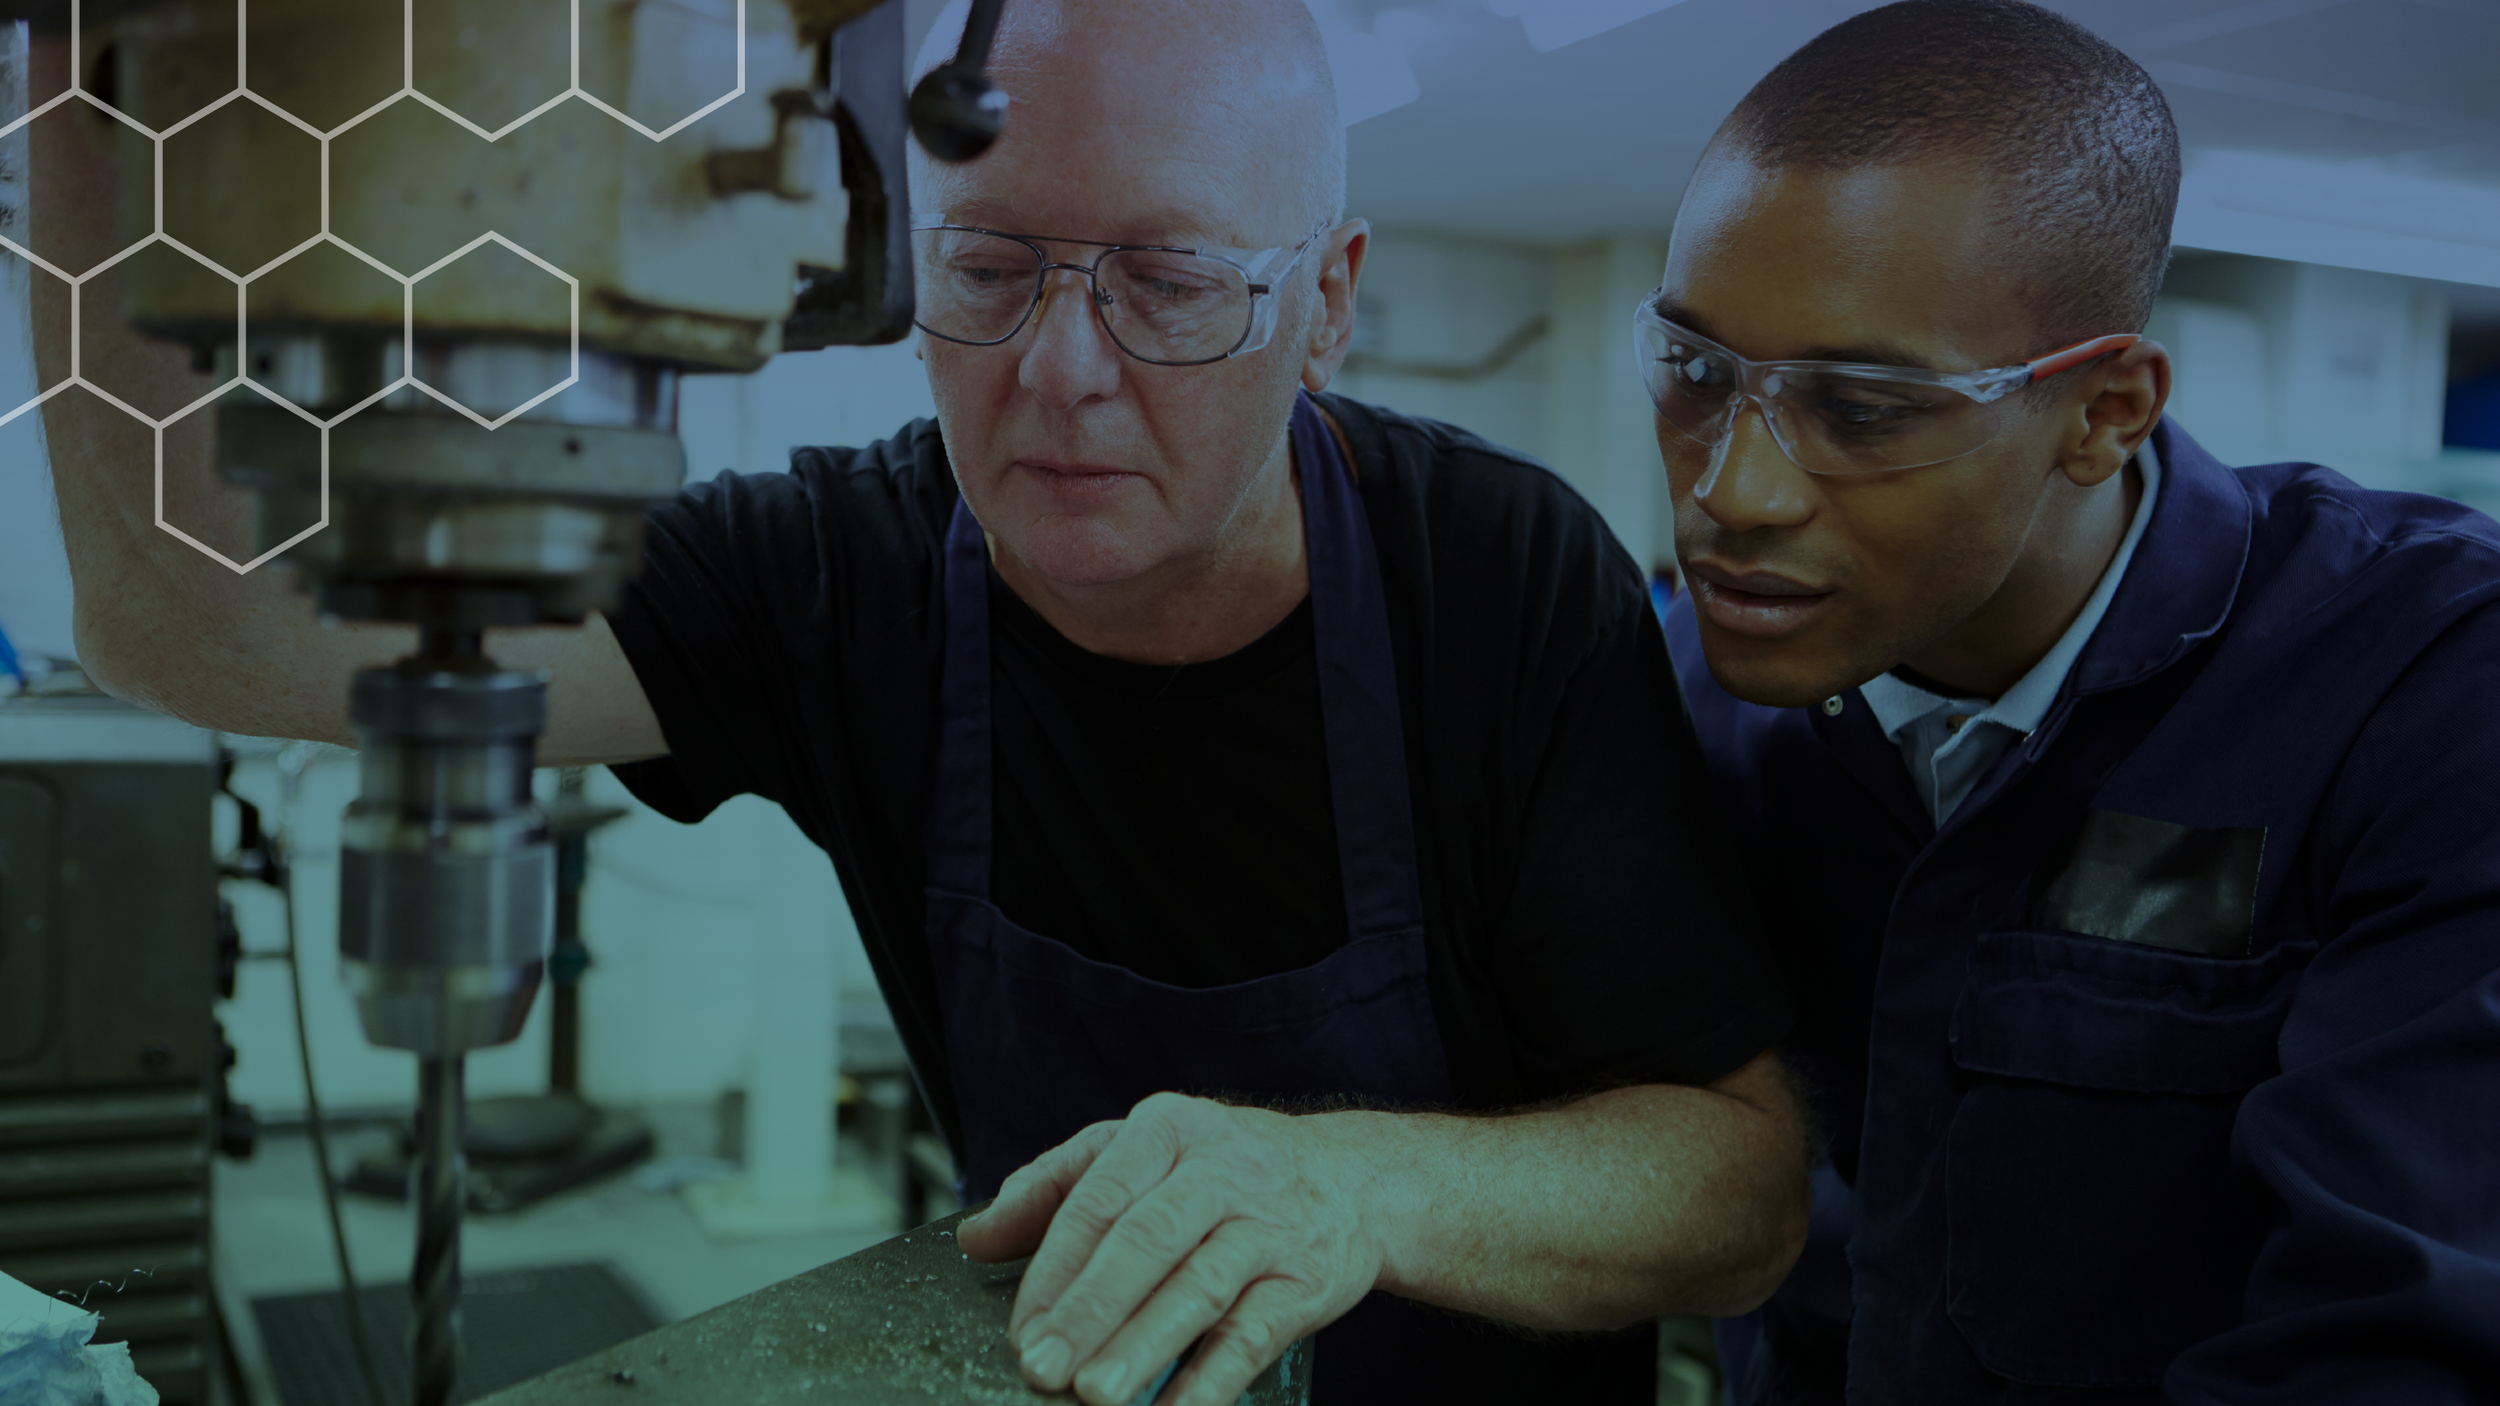 INVEST IN YOUR WORKFORCE AND GROW YOUR BUSINESS - Find out how apprenticeship can help you develop the next generation of highly-skilled workers.